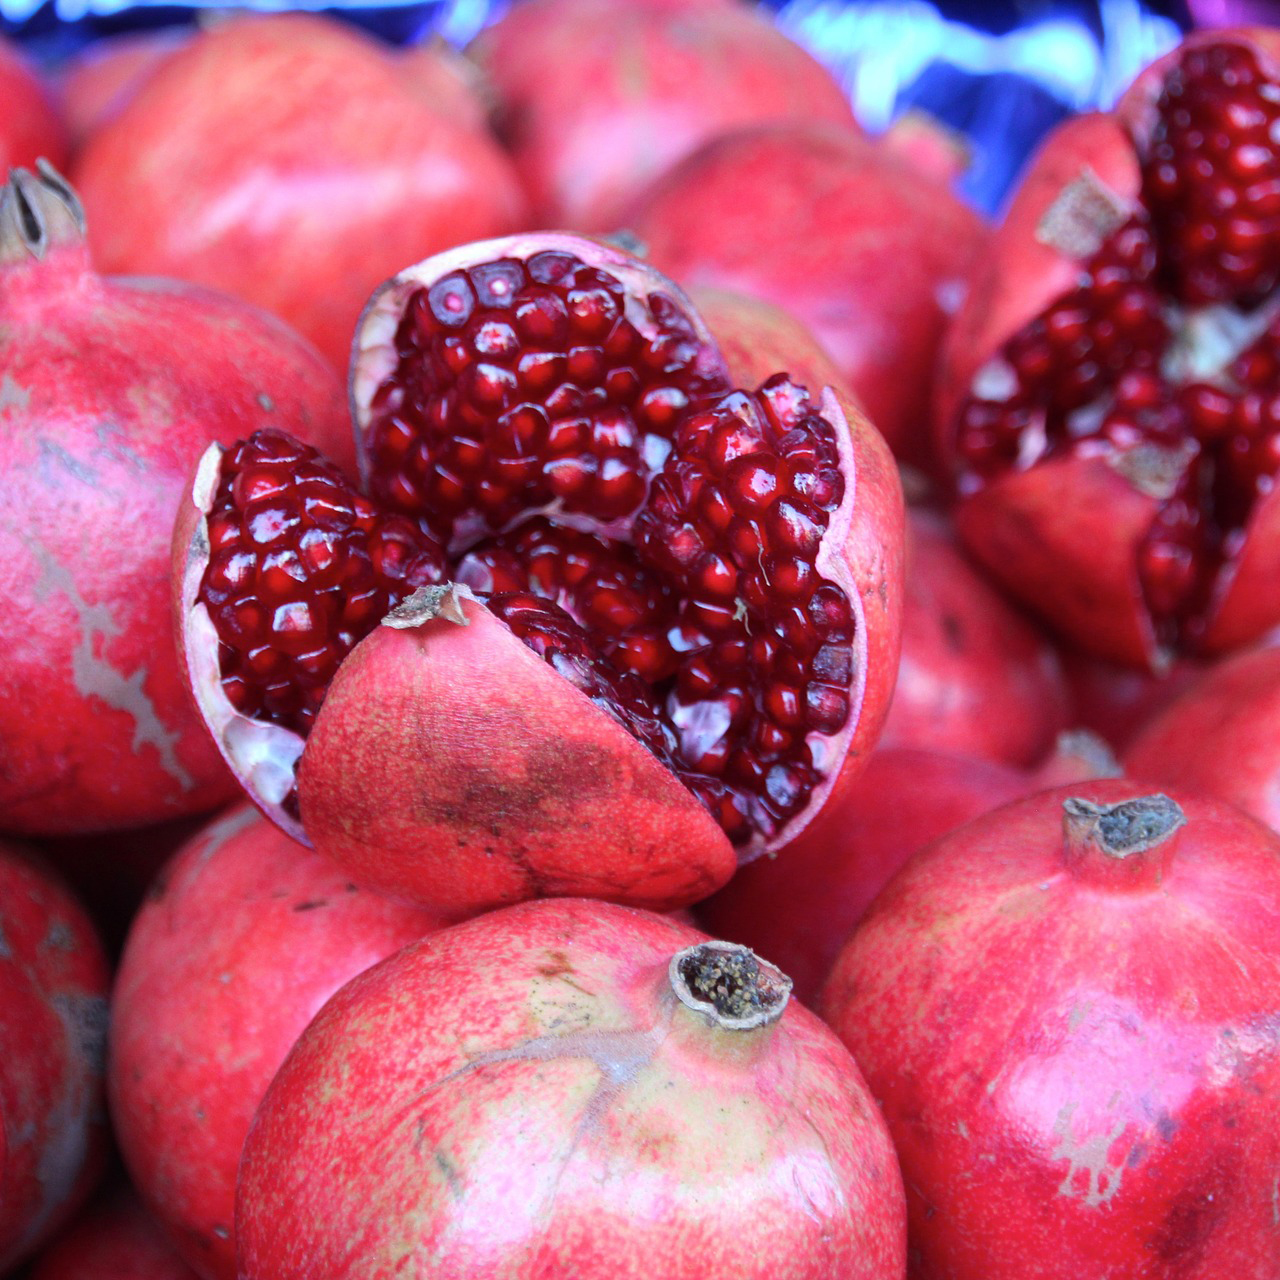 Pomegranate Pics Pomegranates Health Topics Nutritionfacts Org